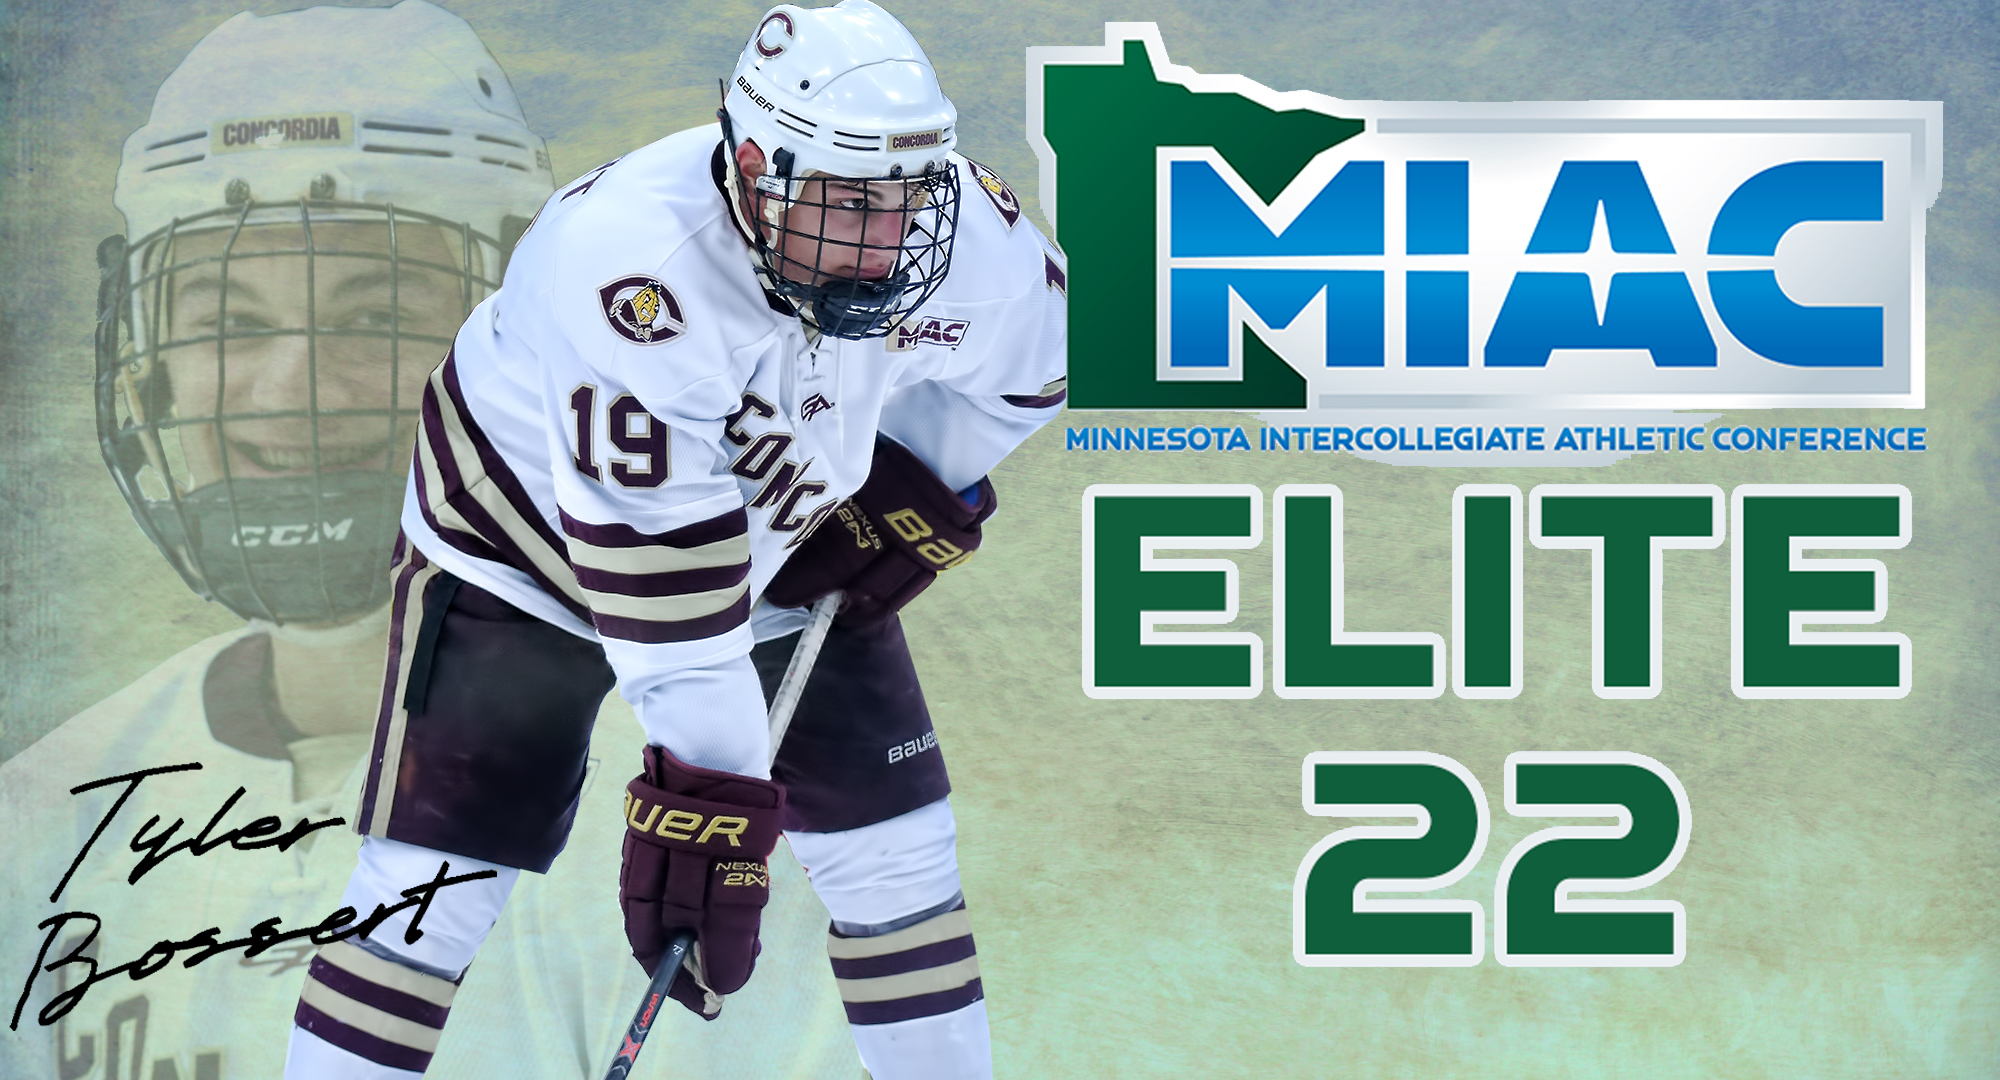 Tyler Bossert, who has a 3.98 GPA while majoring in Business, was named the winner of the MIAC Elite 22 award.